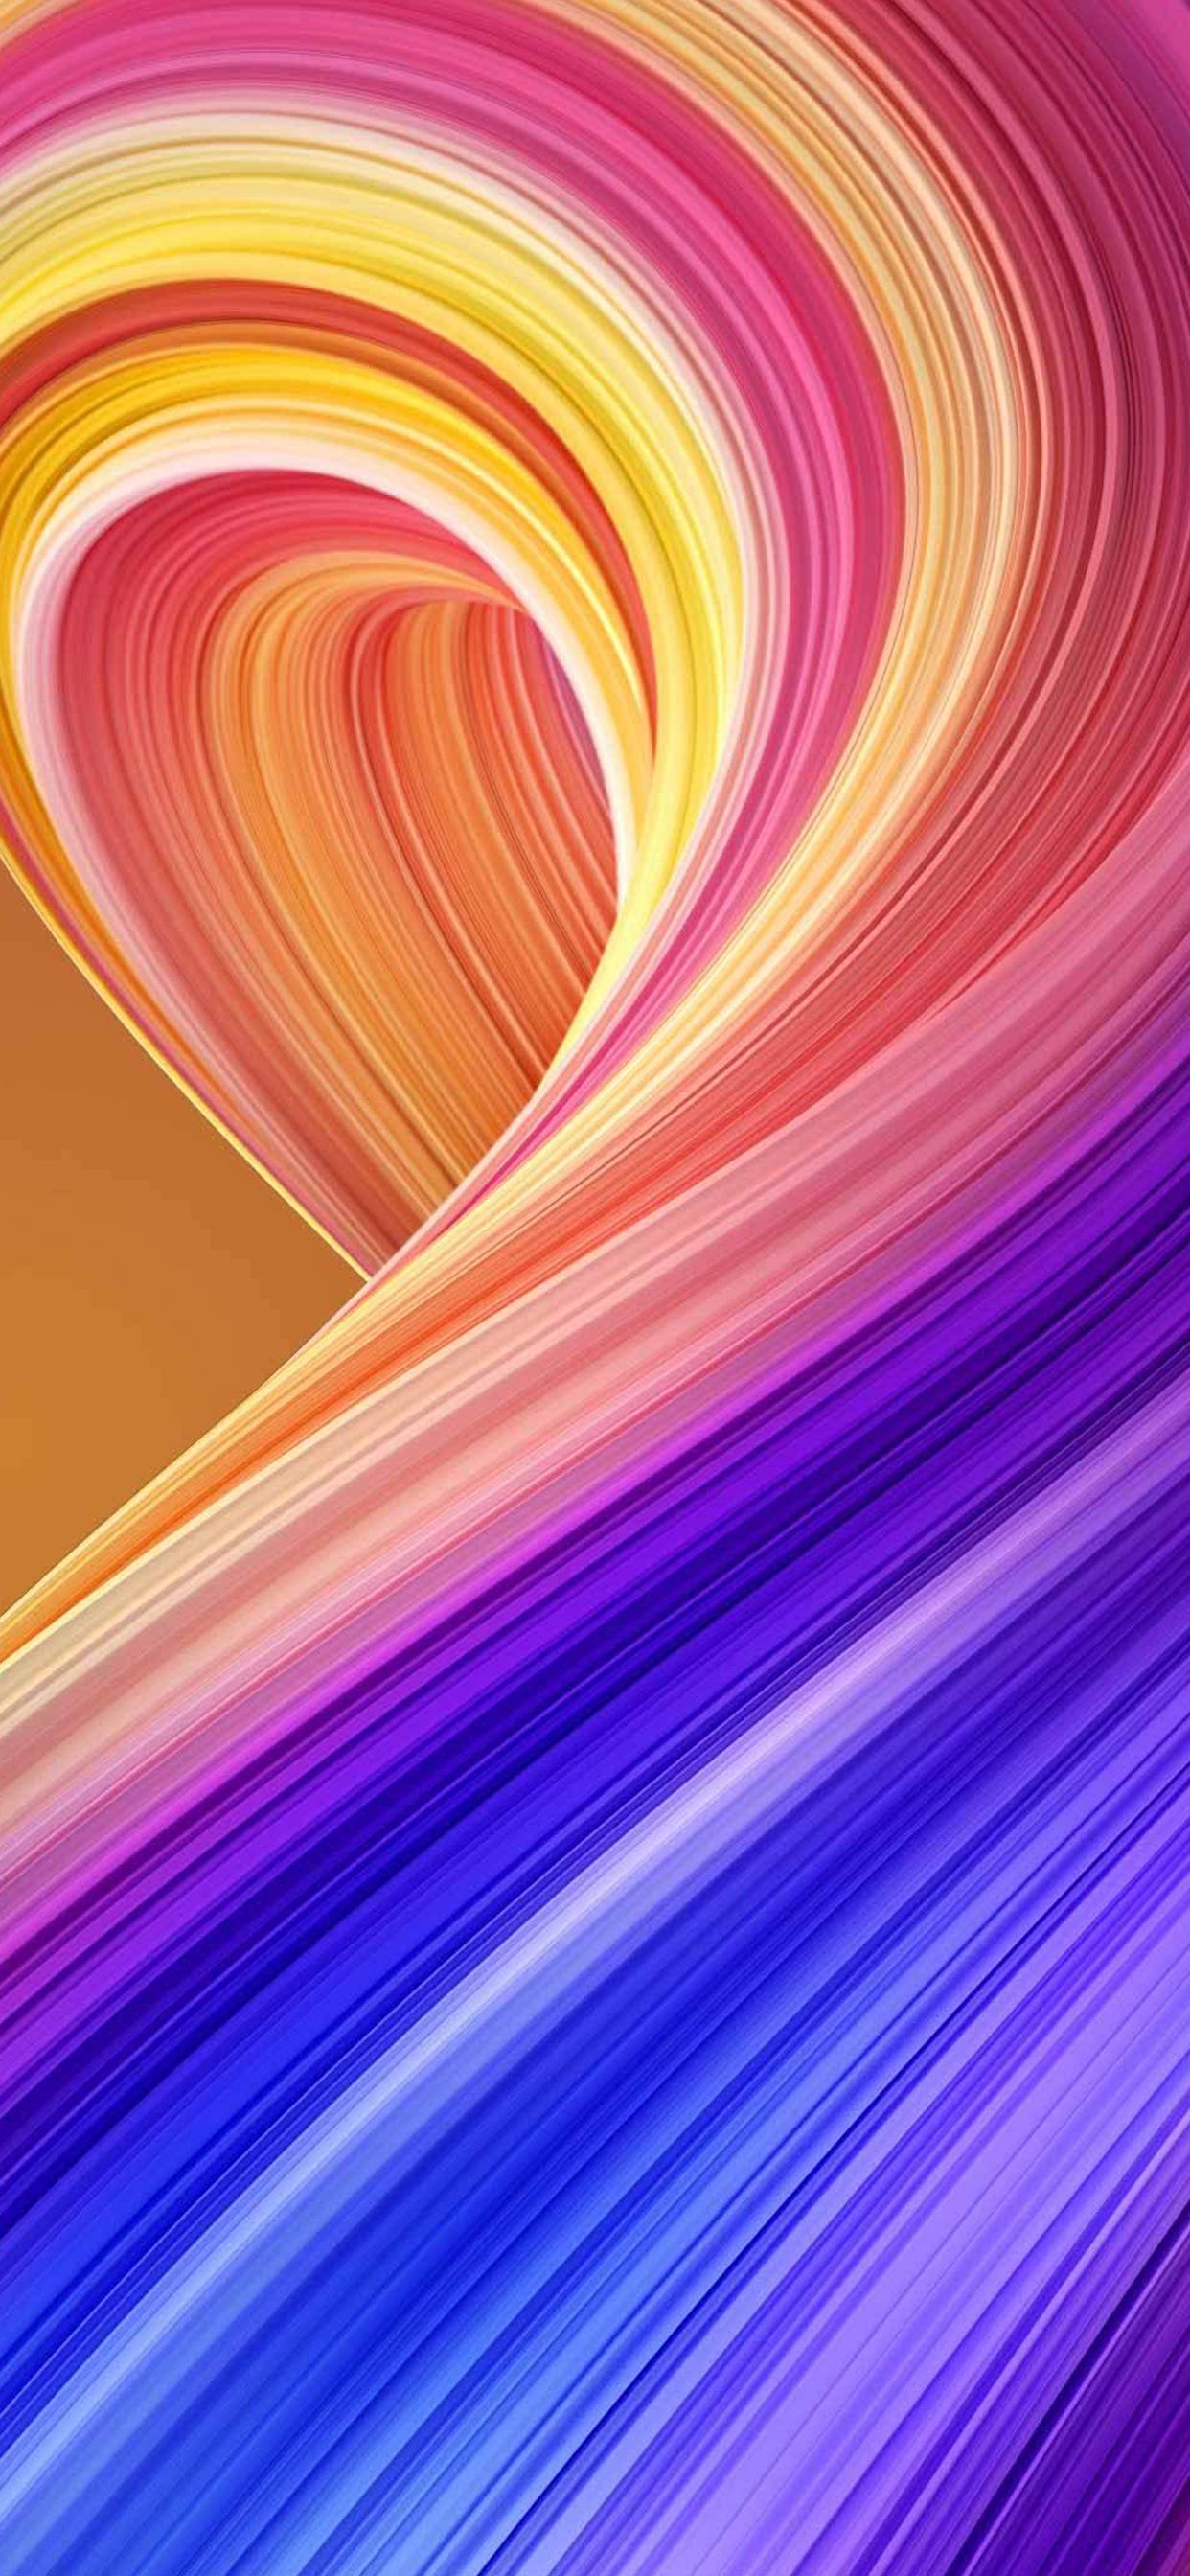 Top 10 Best Alternative Wallpaper For Apple Iphone Xs Max 07 Of 10 Colorful Abstract 3d Hd Wallpapers Wallpapers Download High Resolution Wallpapers Abstract Iphone Wallpaper Watercolor Wallpaper Iphone Live Wallpaper Iphone